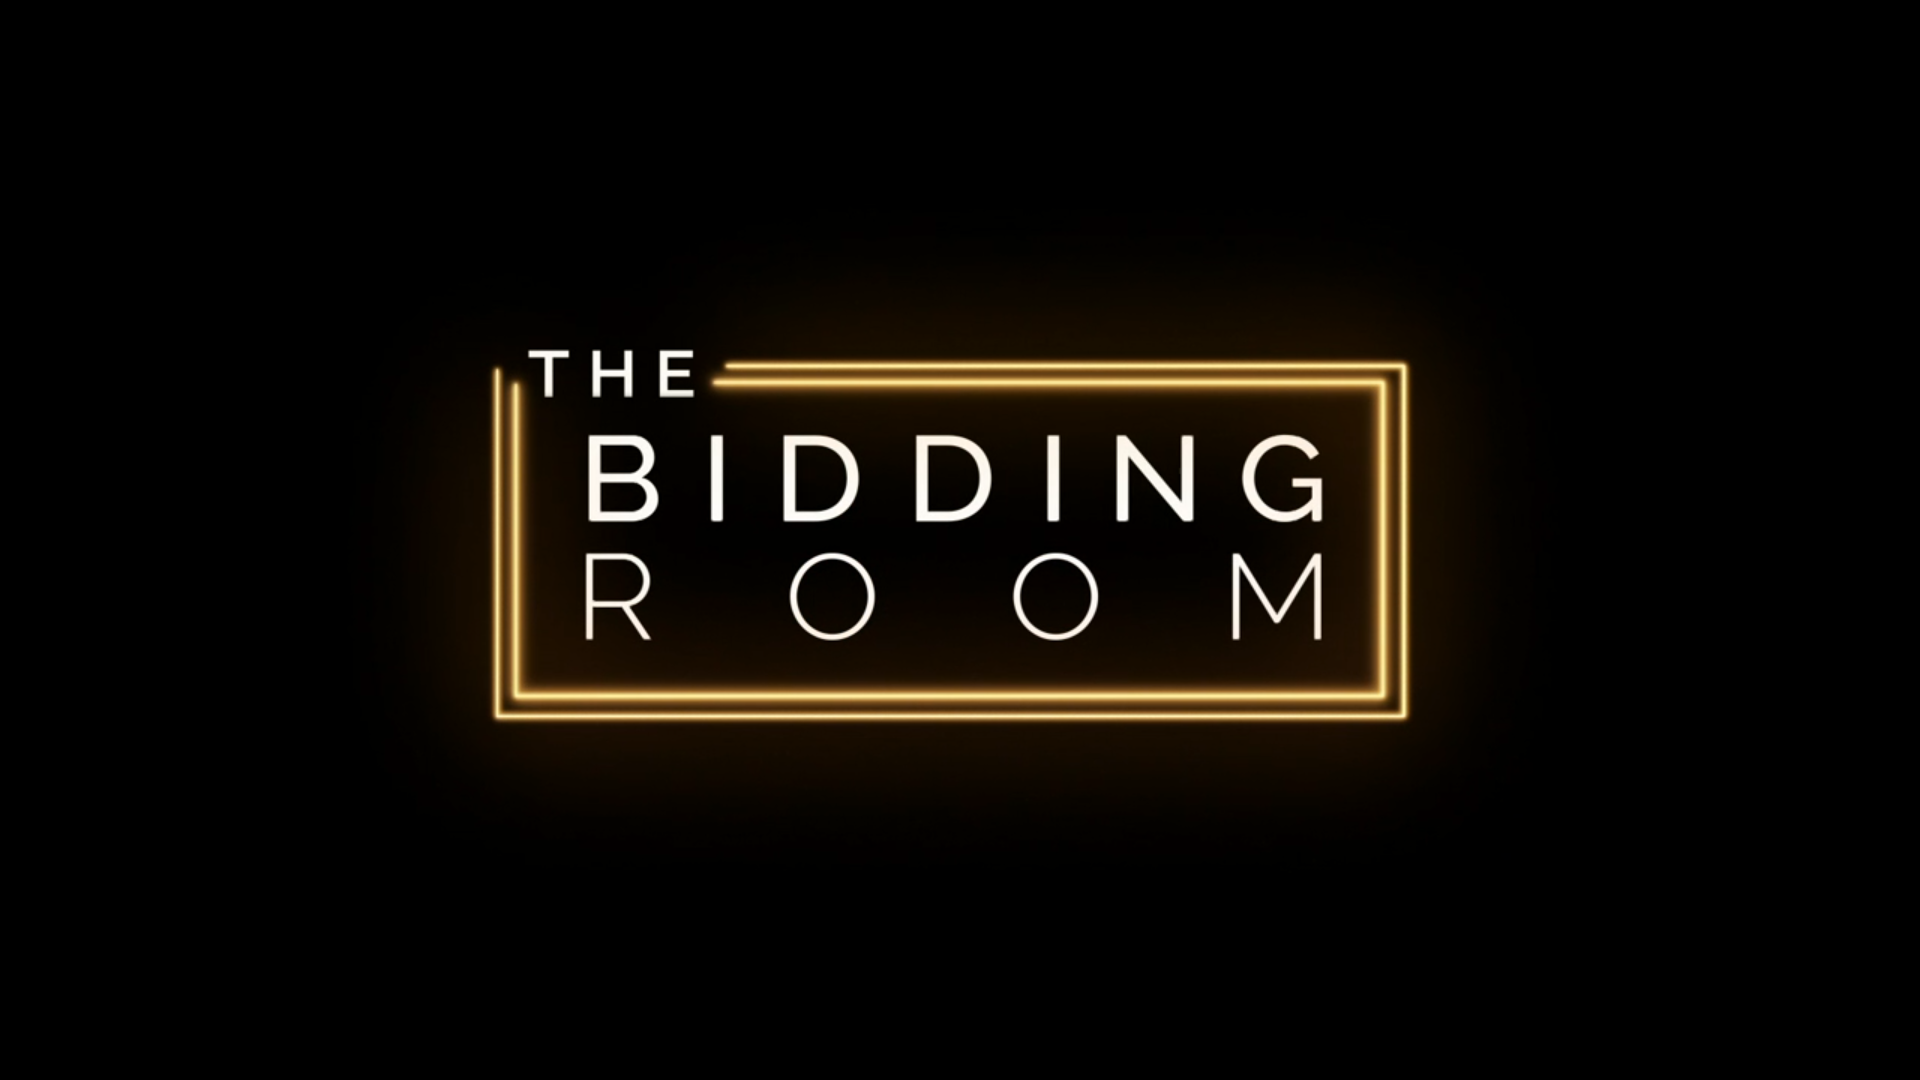 The Bidding Room